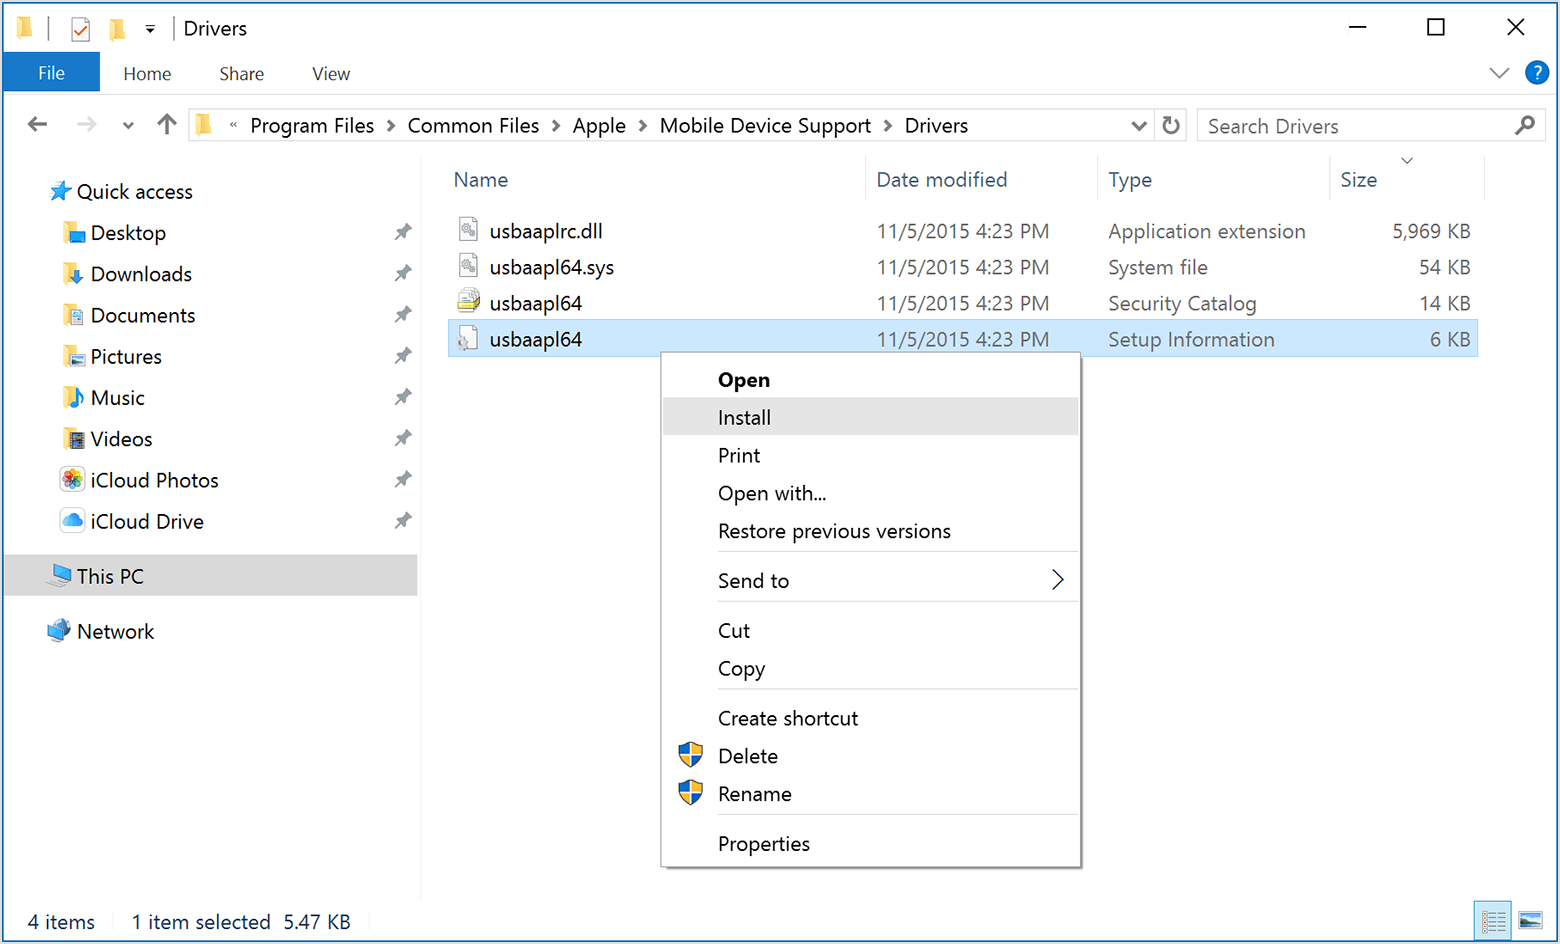 win10-explorer-apple-mobile-device-support-drivers.png